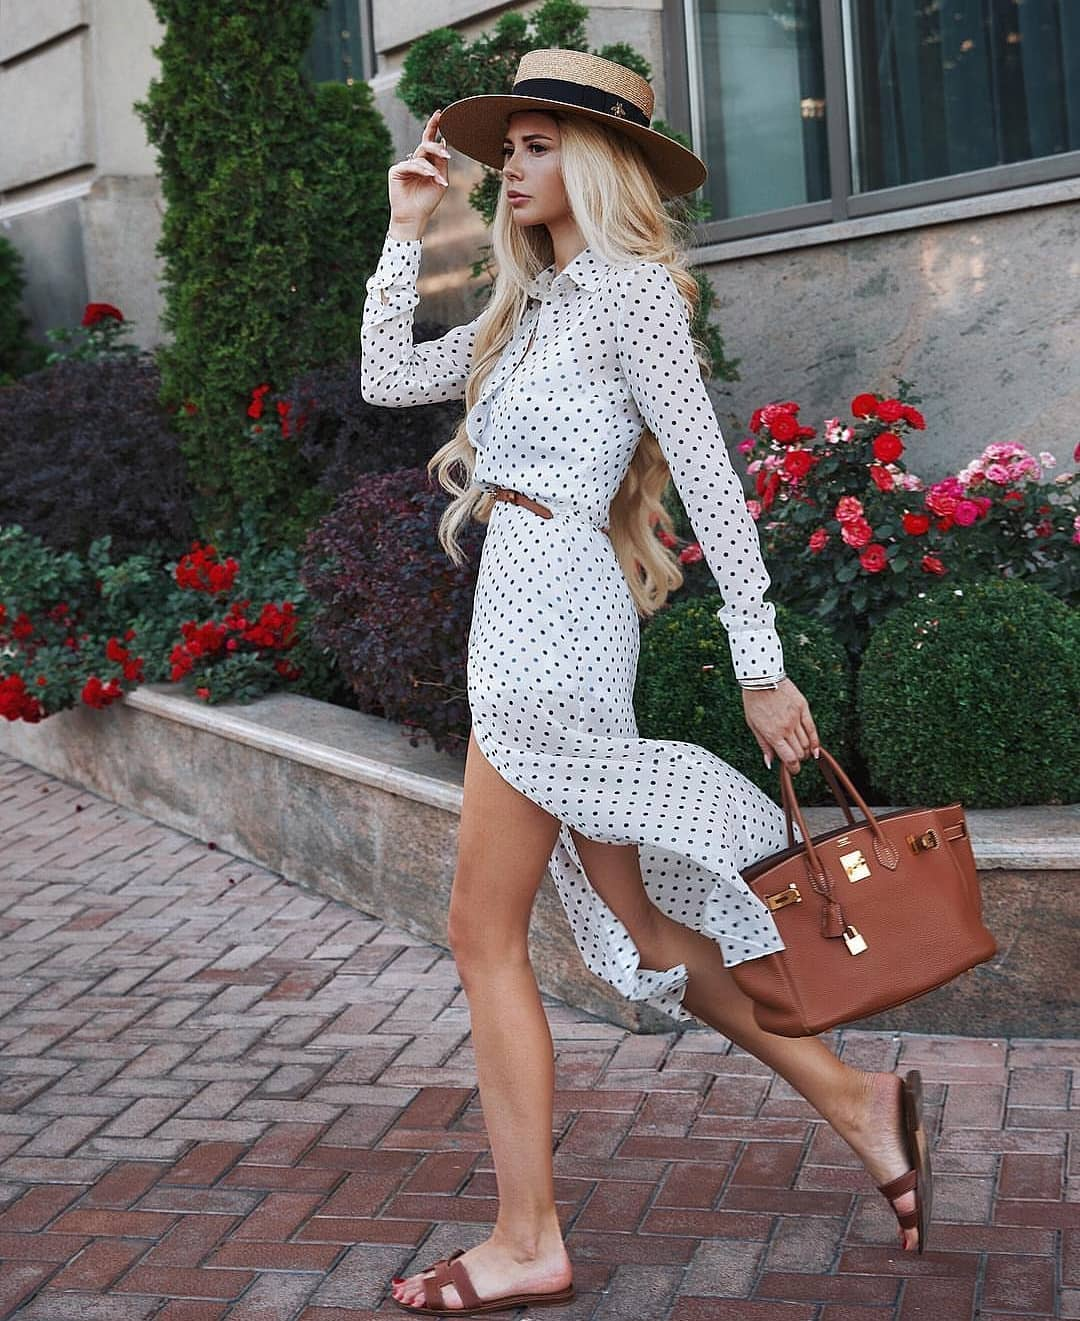 Retro Style White Shirtdress In Black Dots For Summer 2020